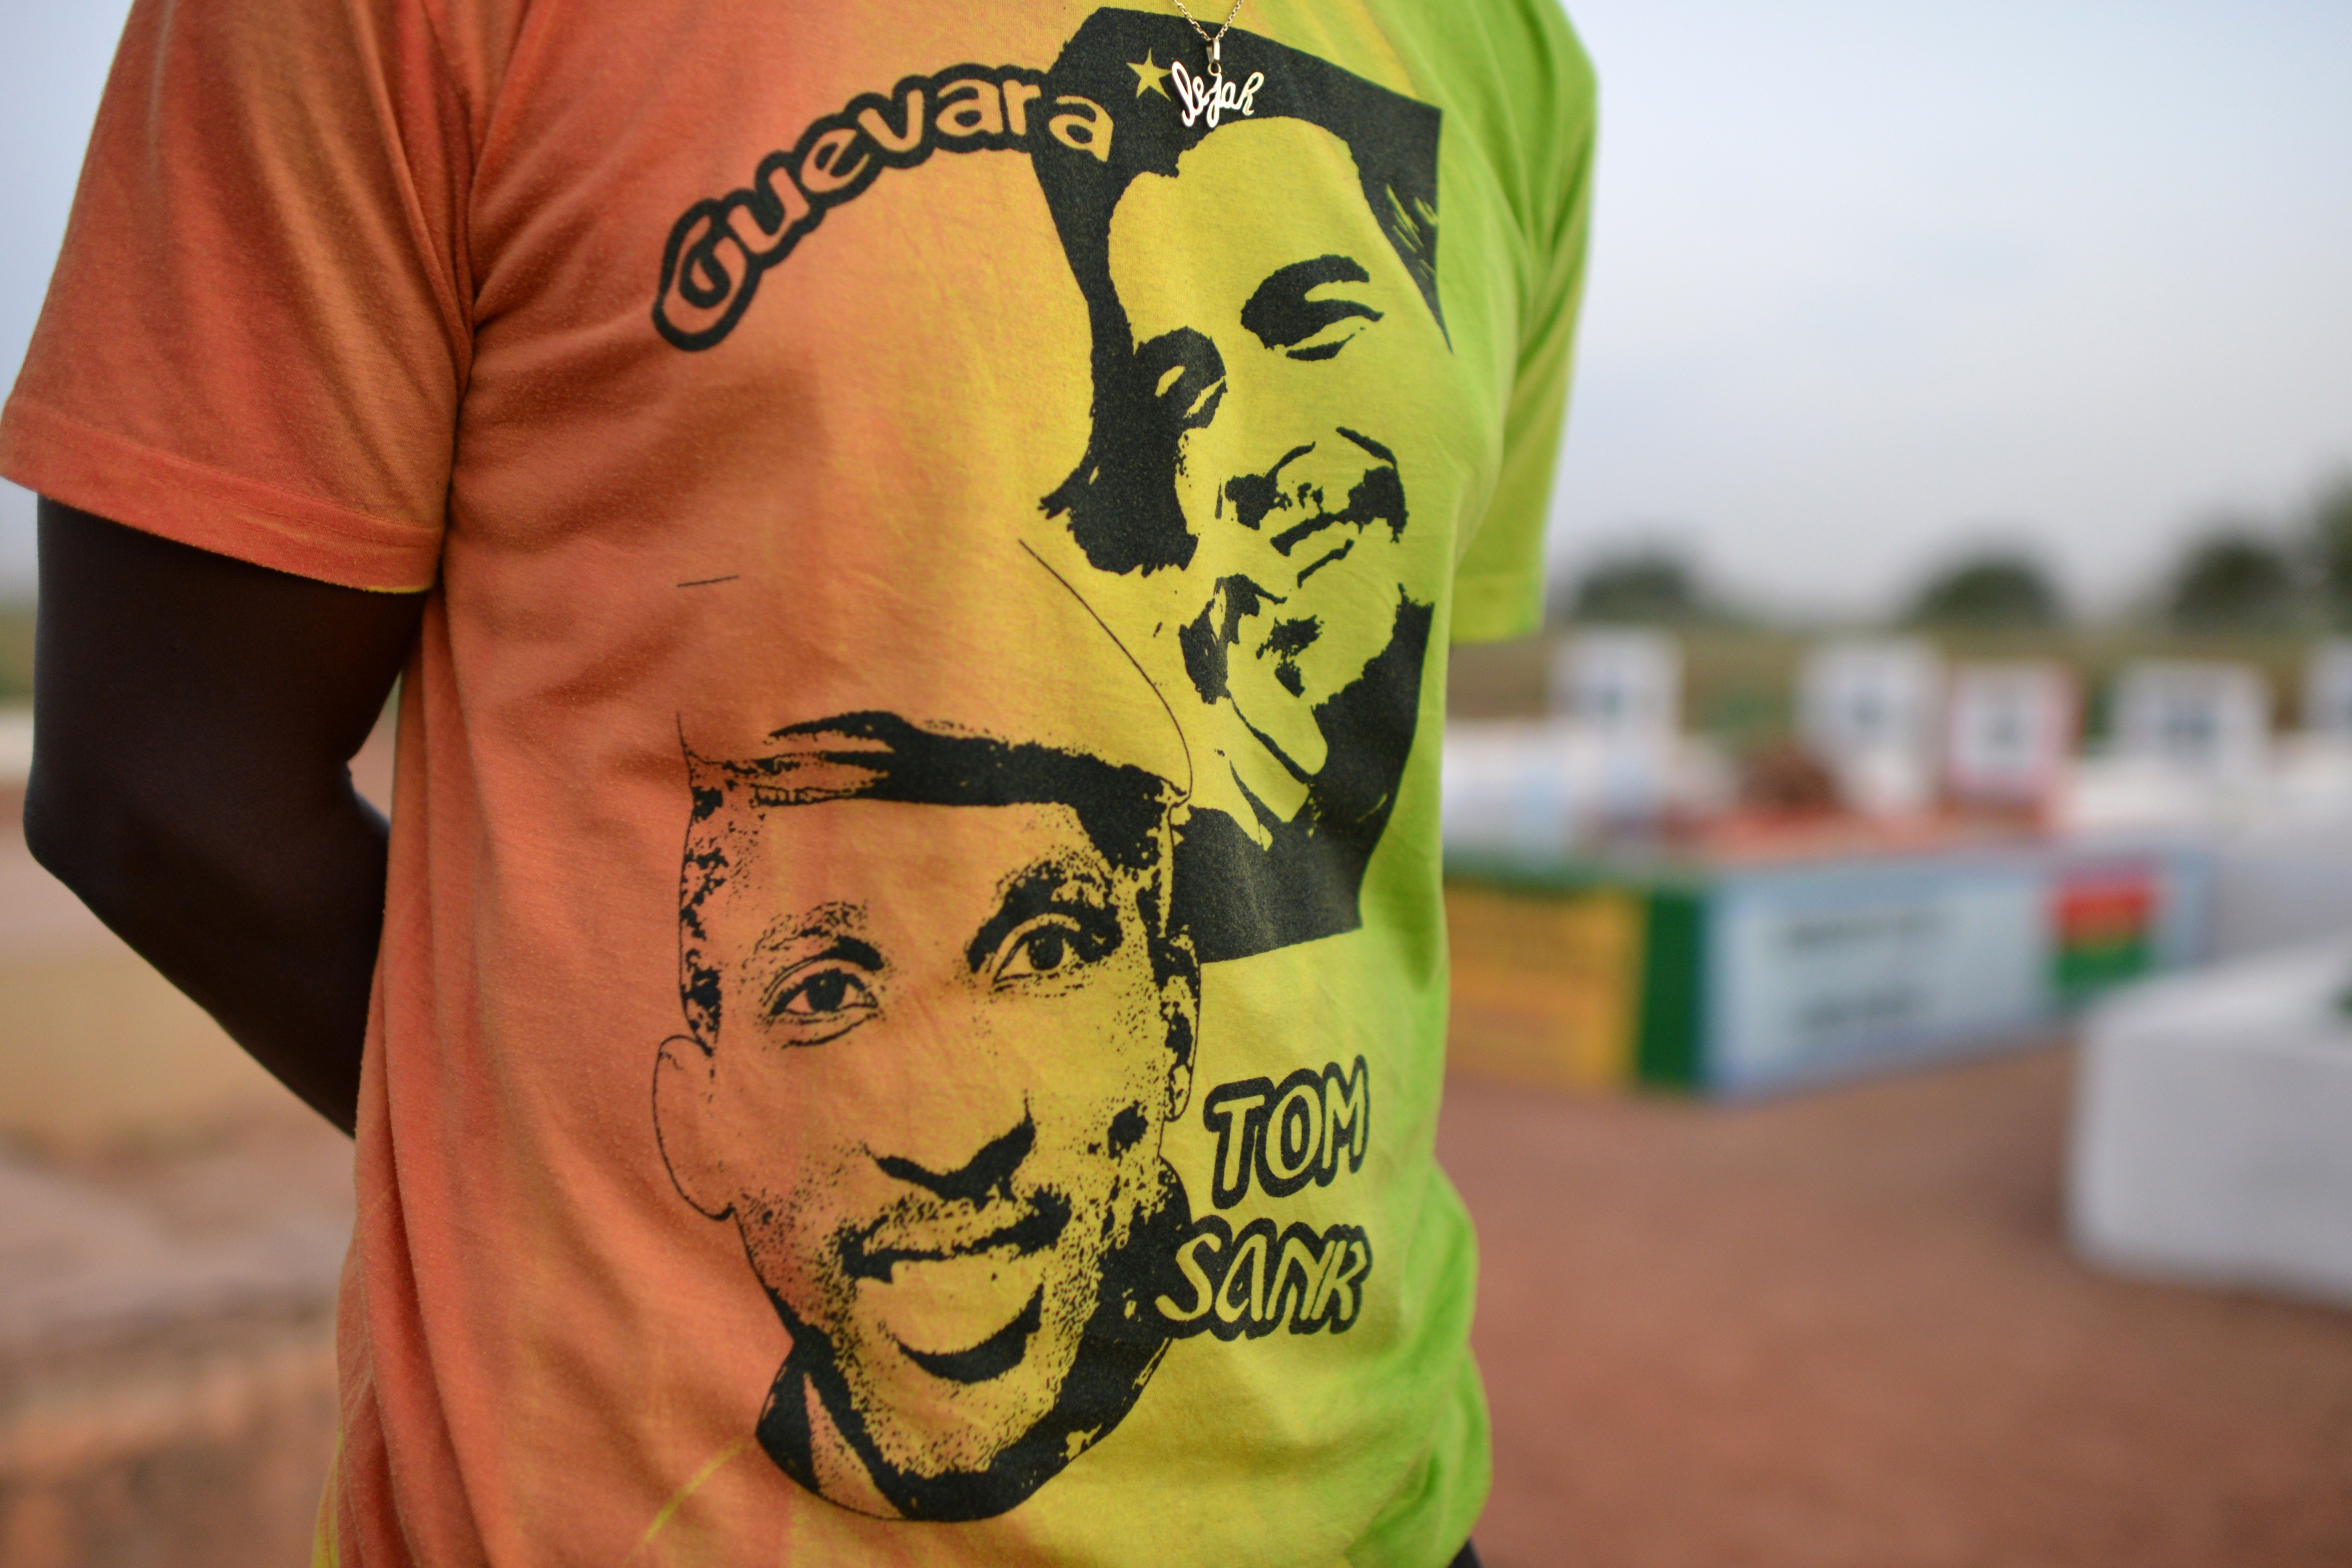 Reggae artist Karim Sama, known as Sams'K Le Jah, wears a t-shirt showing Thomas Sankara (1949-1987), the father of the Burkinabe revolution and former president who was killed in Ouagadougou 27 years ago